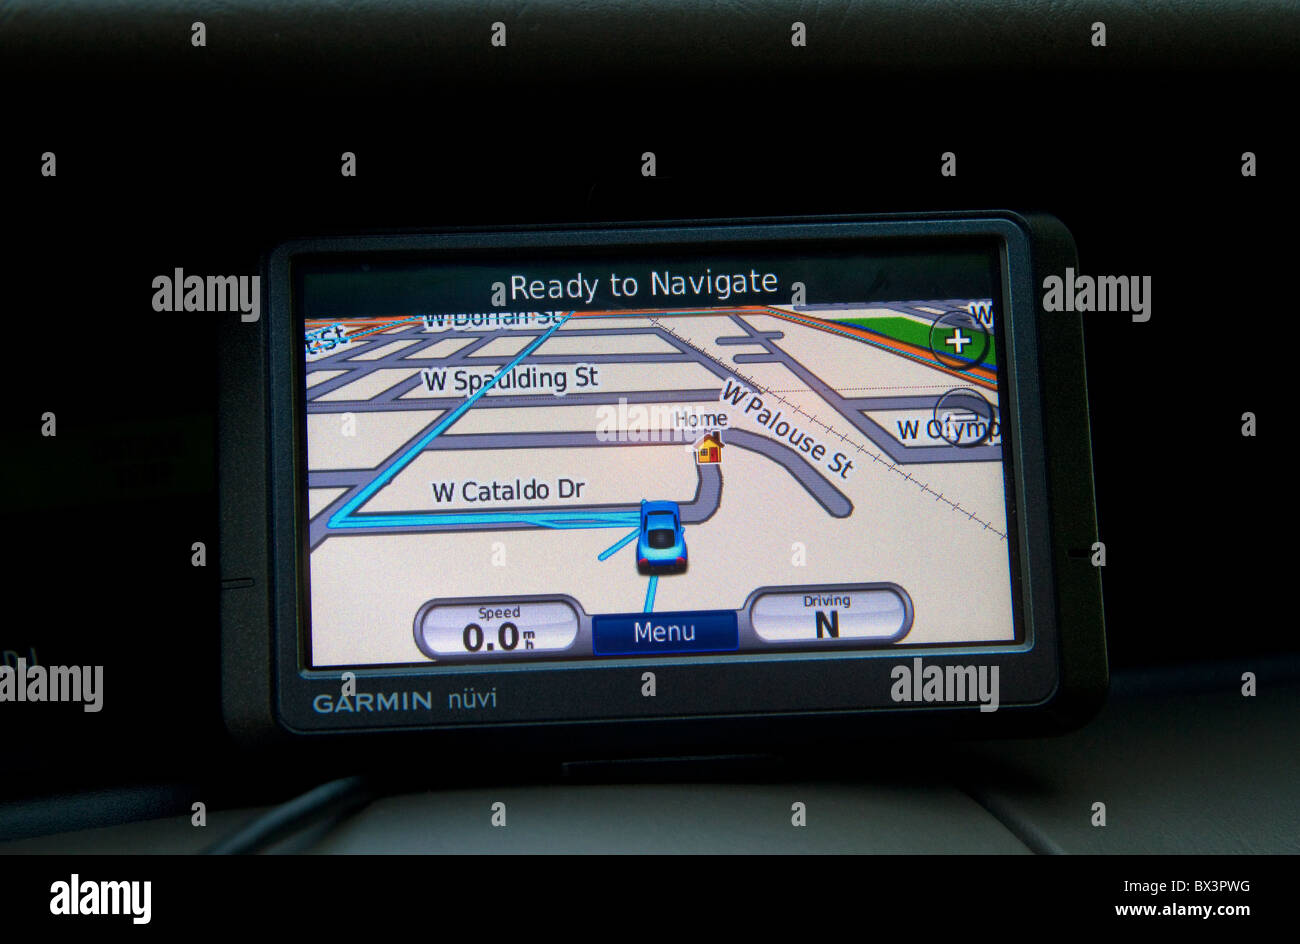 GPS navigation device being used in a car. - Stock Image